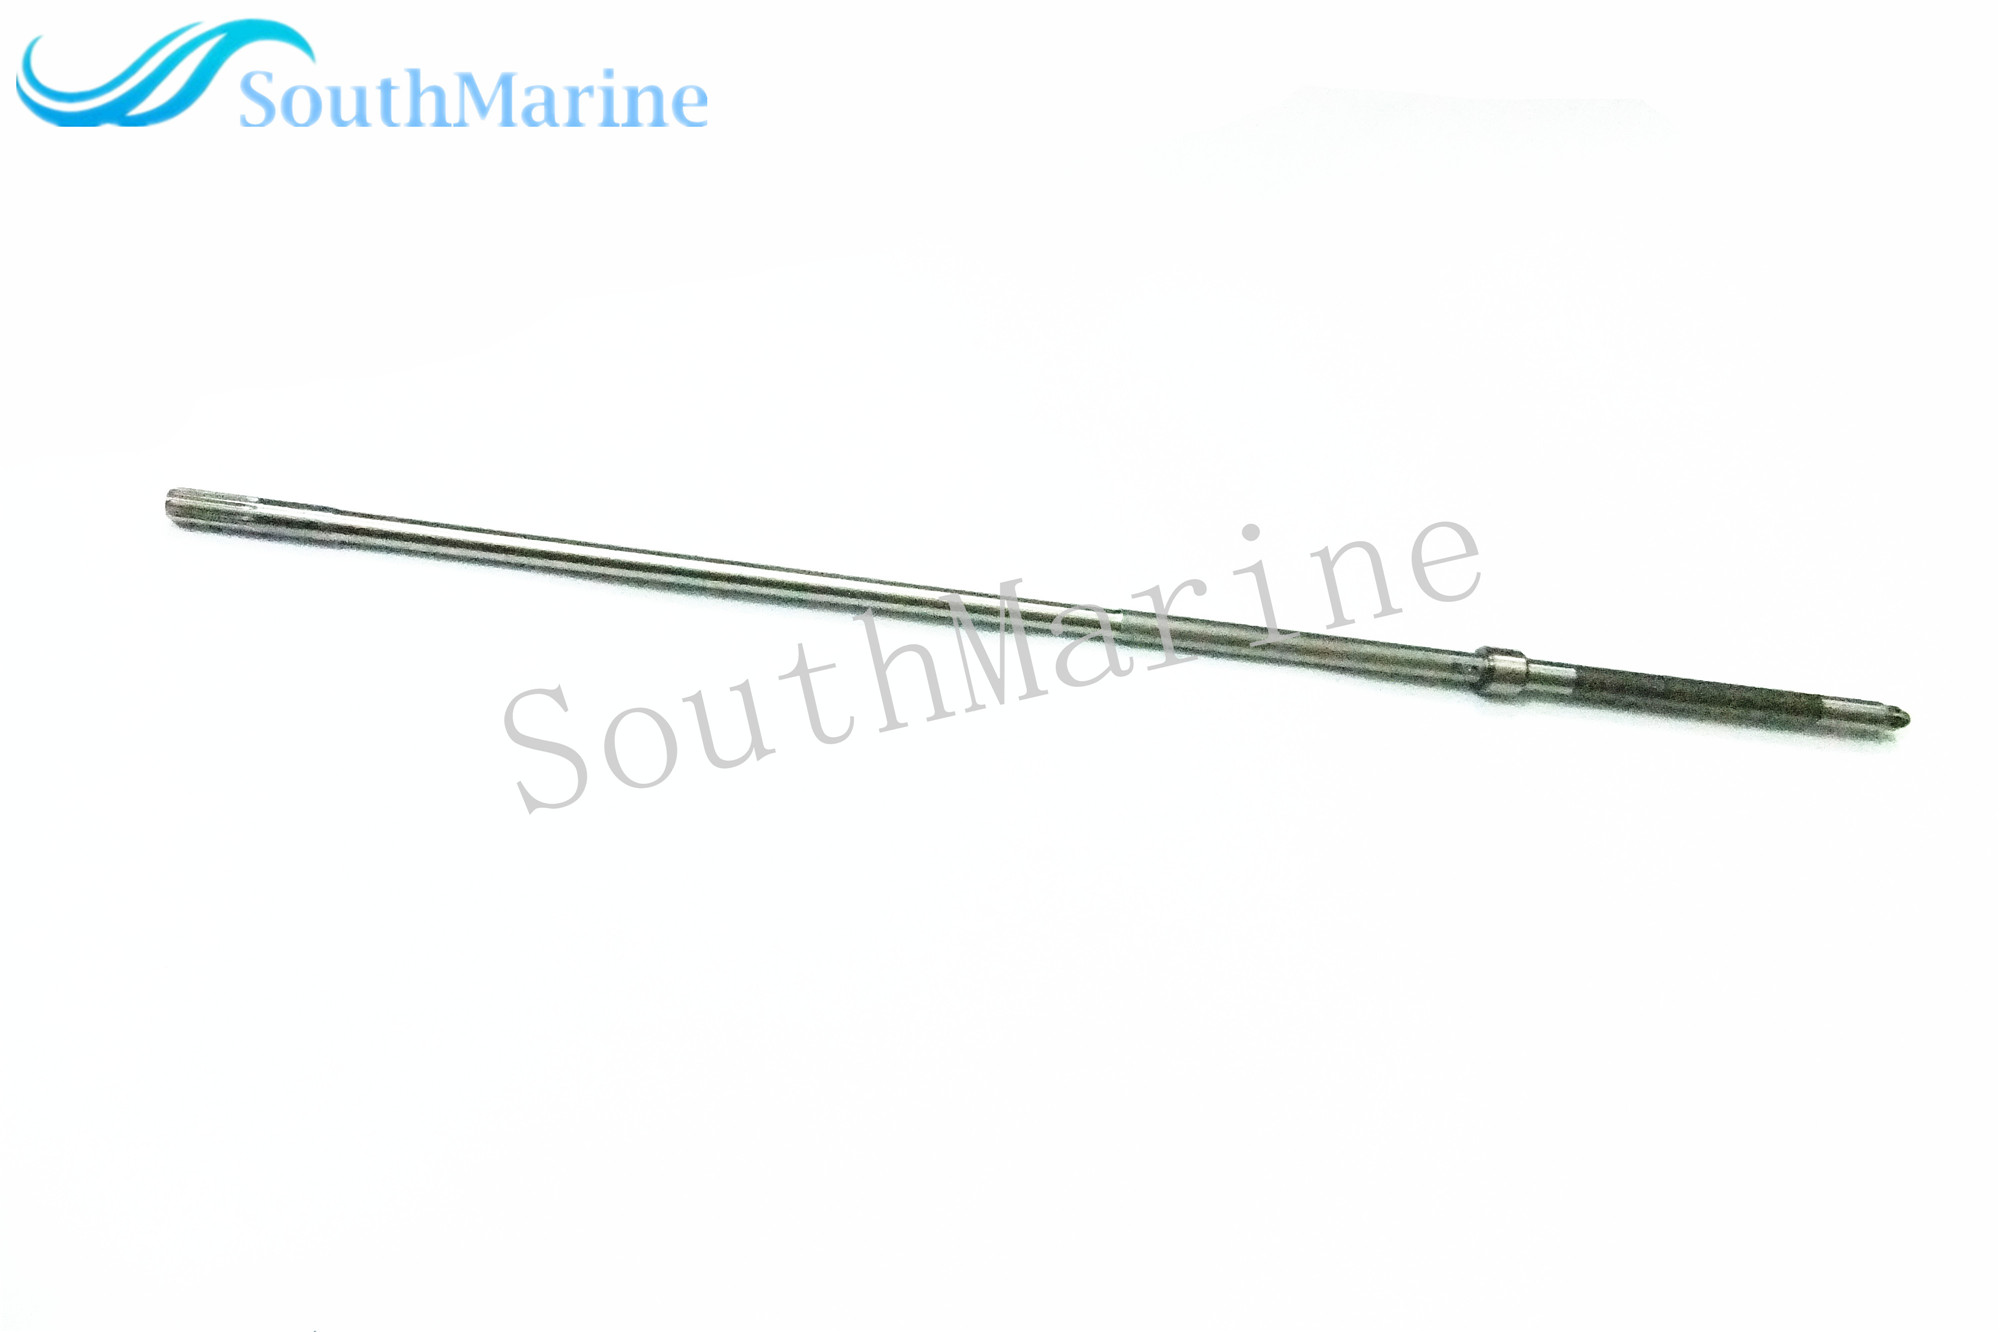 63v 11 Long Drive Shaft For Outboard Engine Yamaha 4